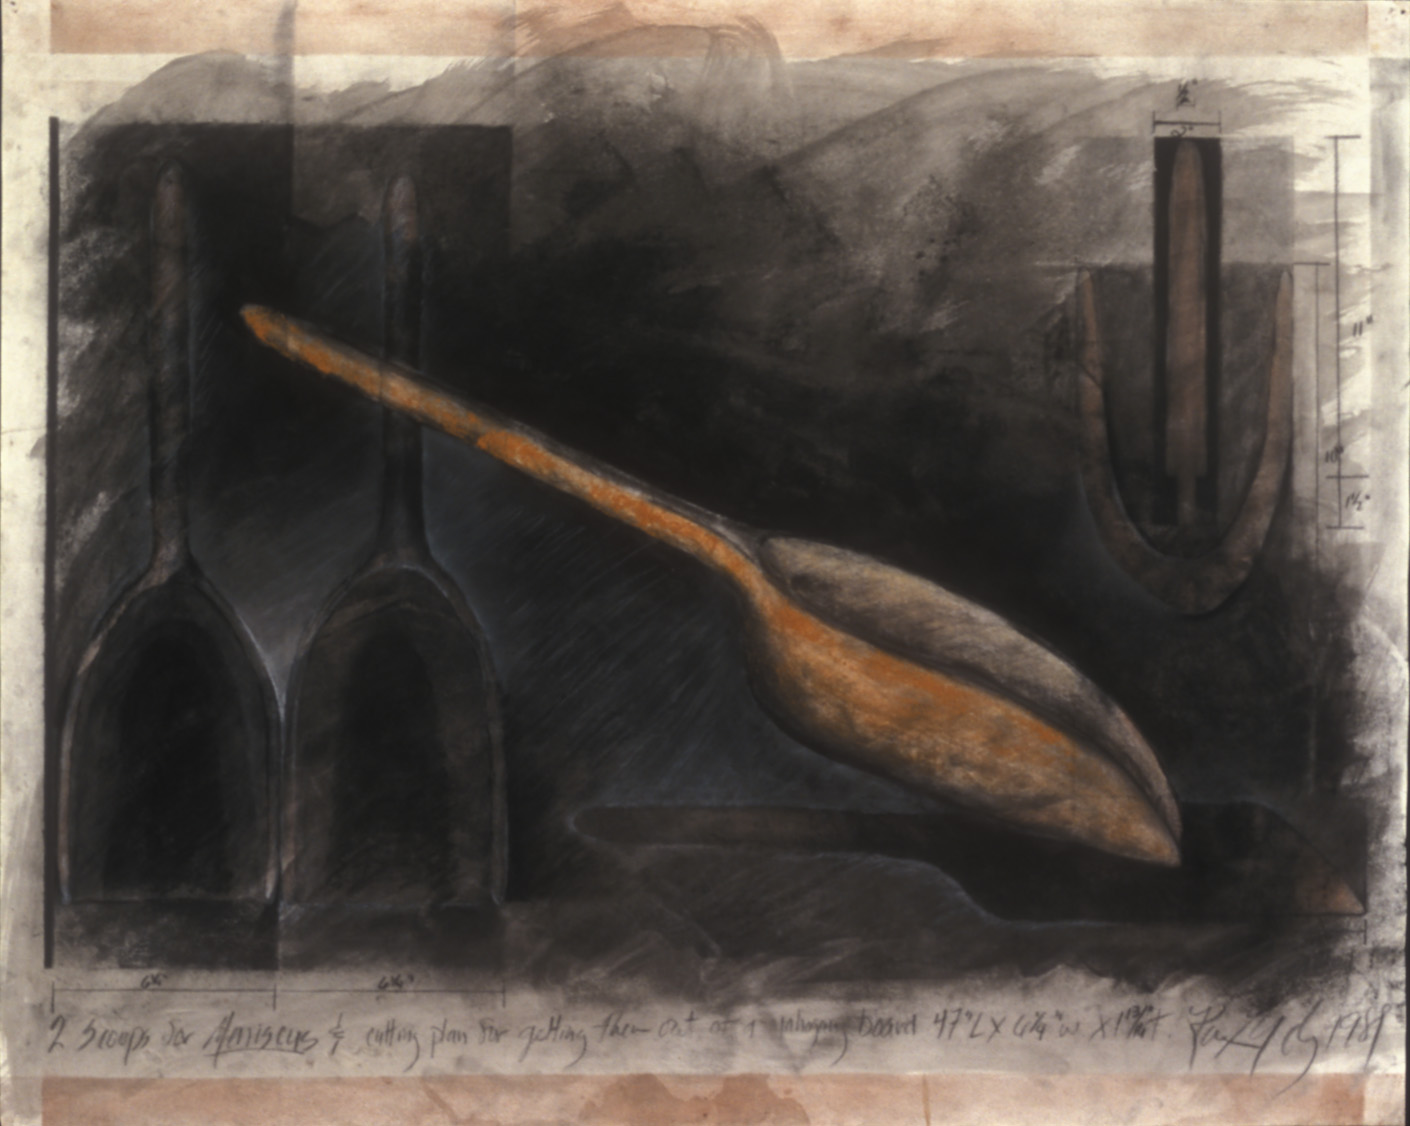 """Two Scoops for   Meniscu  1989  Charcoal and conte crayon on paper, 32 x 40"""".  Oppenheimer Collection, Nerman Museum for Contemporary Art, Johnson County Community College, Overland Park, Kansas."""